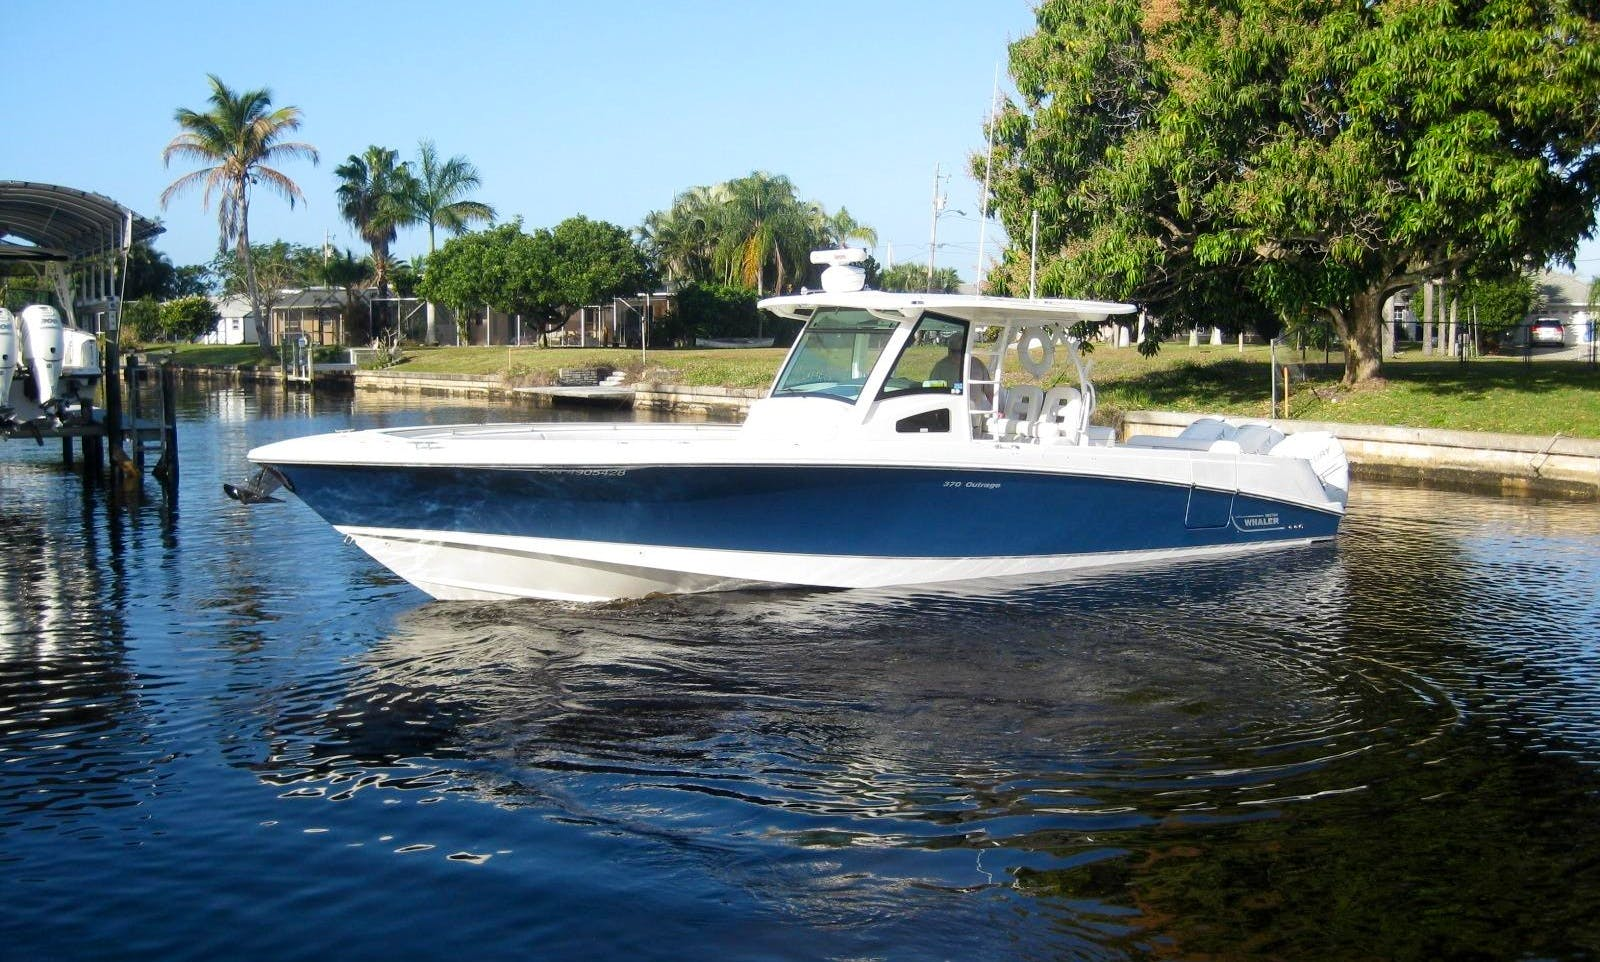 Brand New Boston Whaler 370 Outrage - 11 People